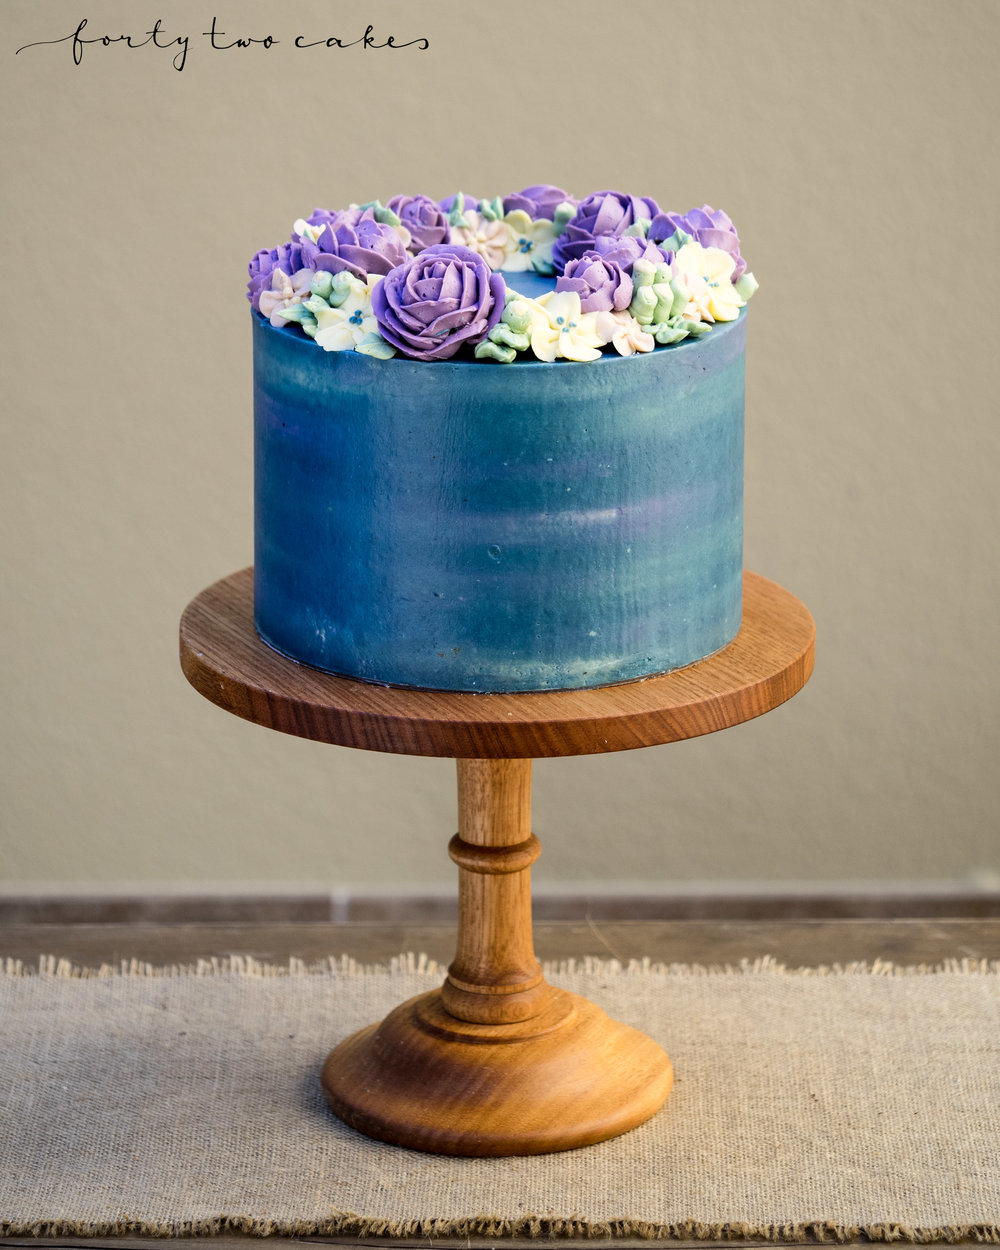 Forty-Two Cakes - Buttercream-03-3.jpg